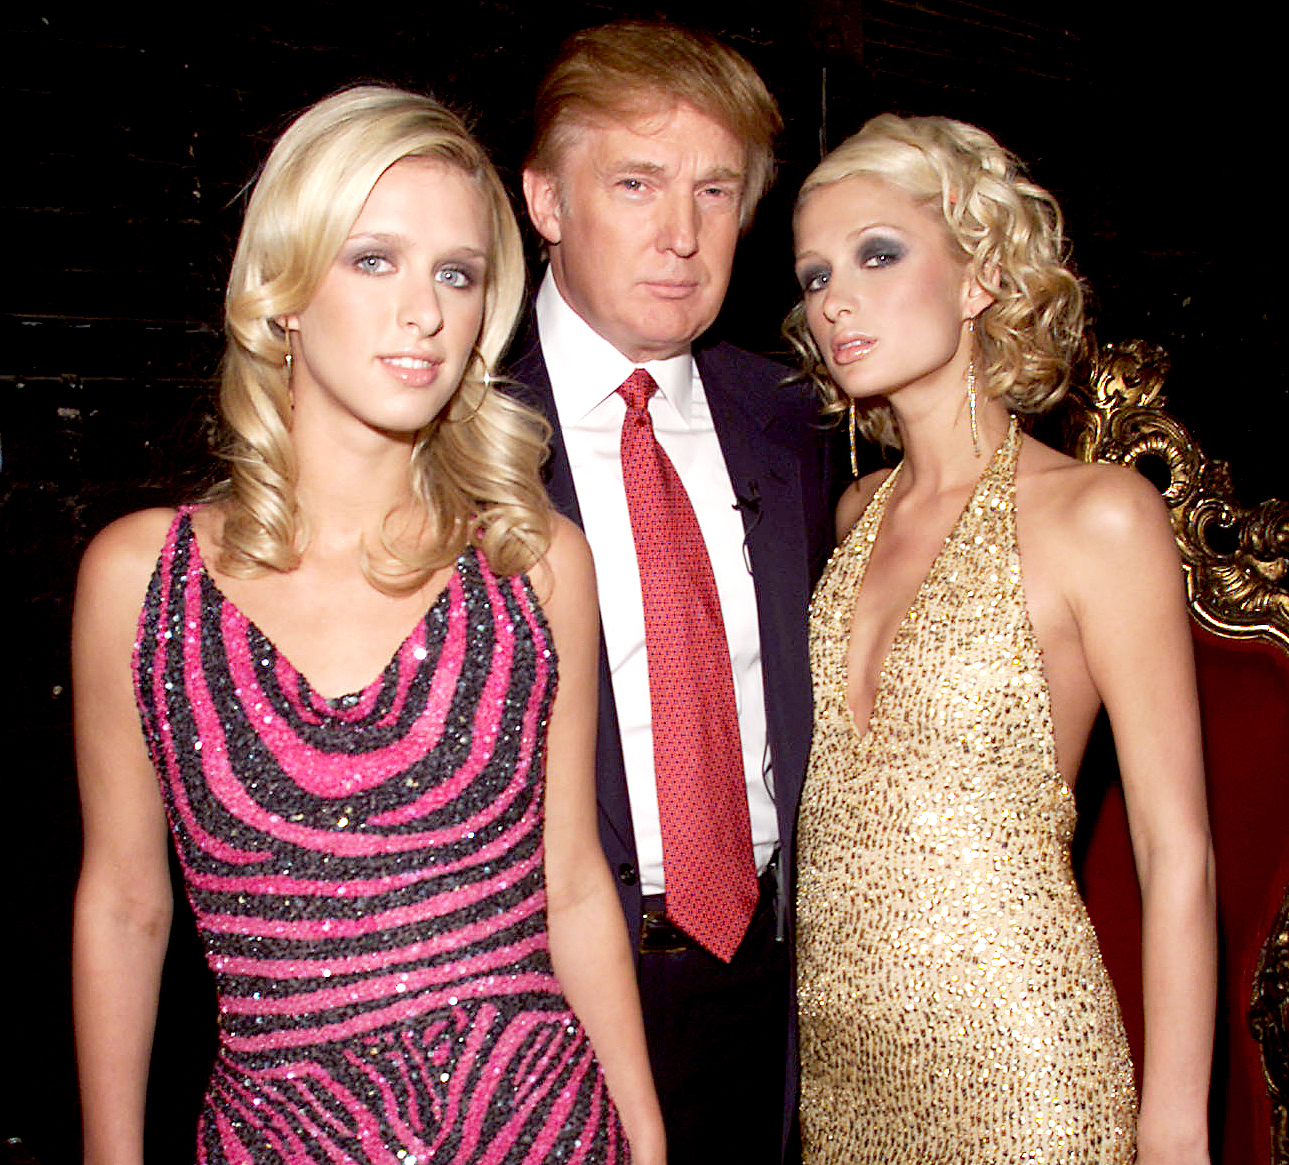 Donald Trump with Paris and Nikke Hilton during rehearsals for the 2001 VH1 Vogue Fashion Awards at Hammerstein Ballroom in New York City, 10/18/01.